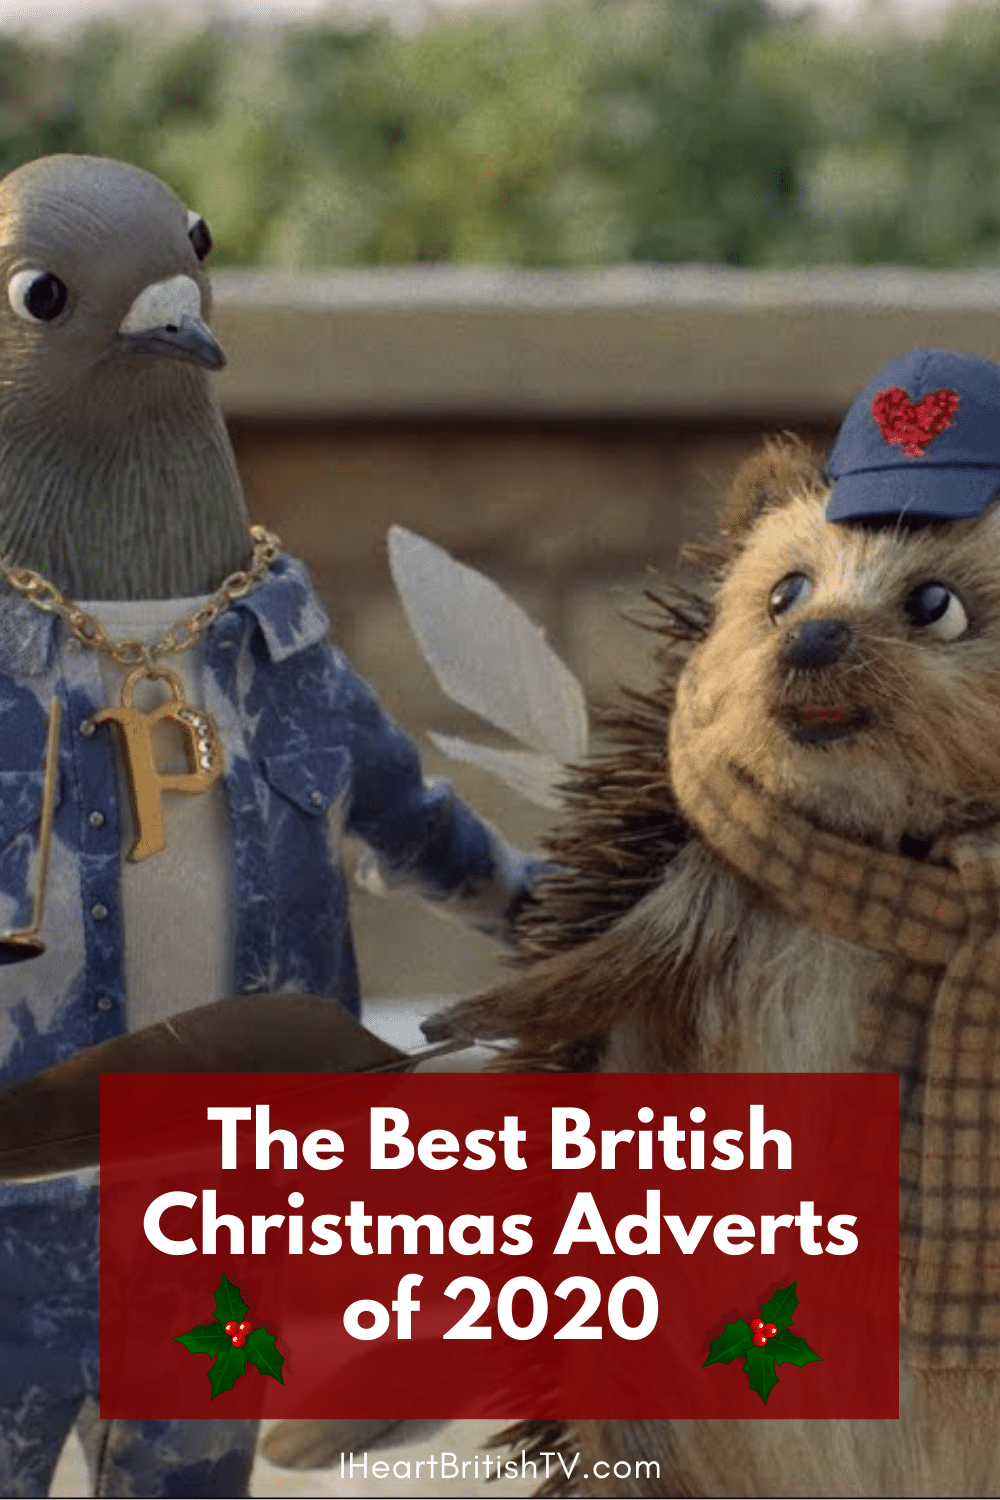 The Best British Christmas Adverts of 2020 2